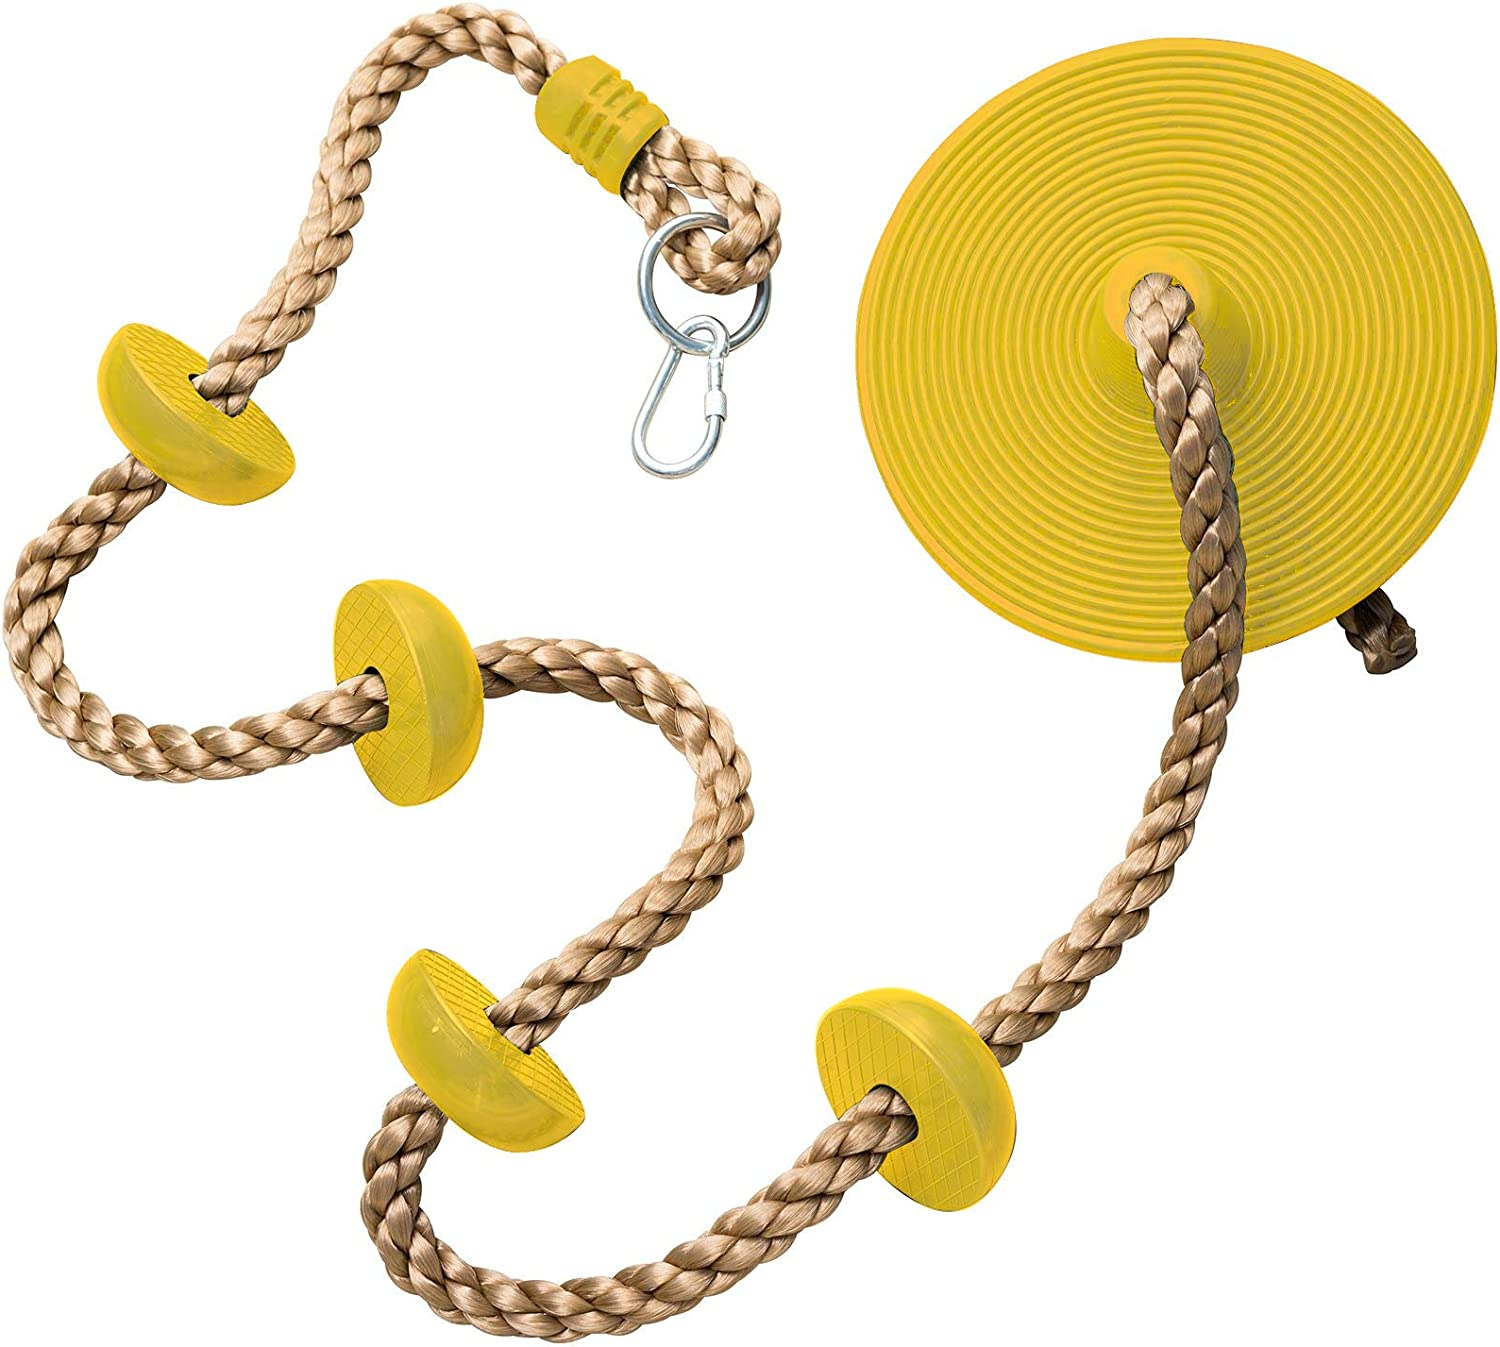 CCTRO Climbing Rope with Platforms and Disc Swing Seat Green - Playground Accessories(Yellow): Toys & Games